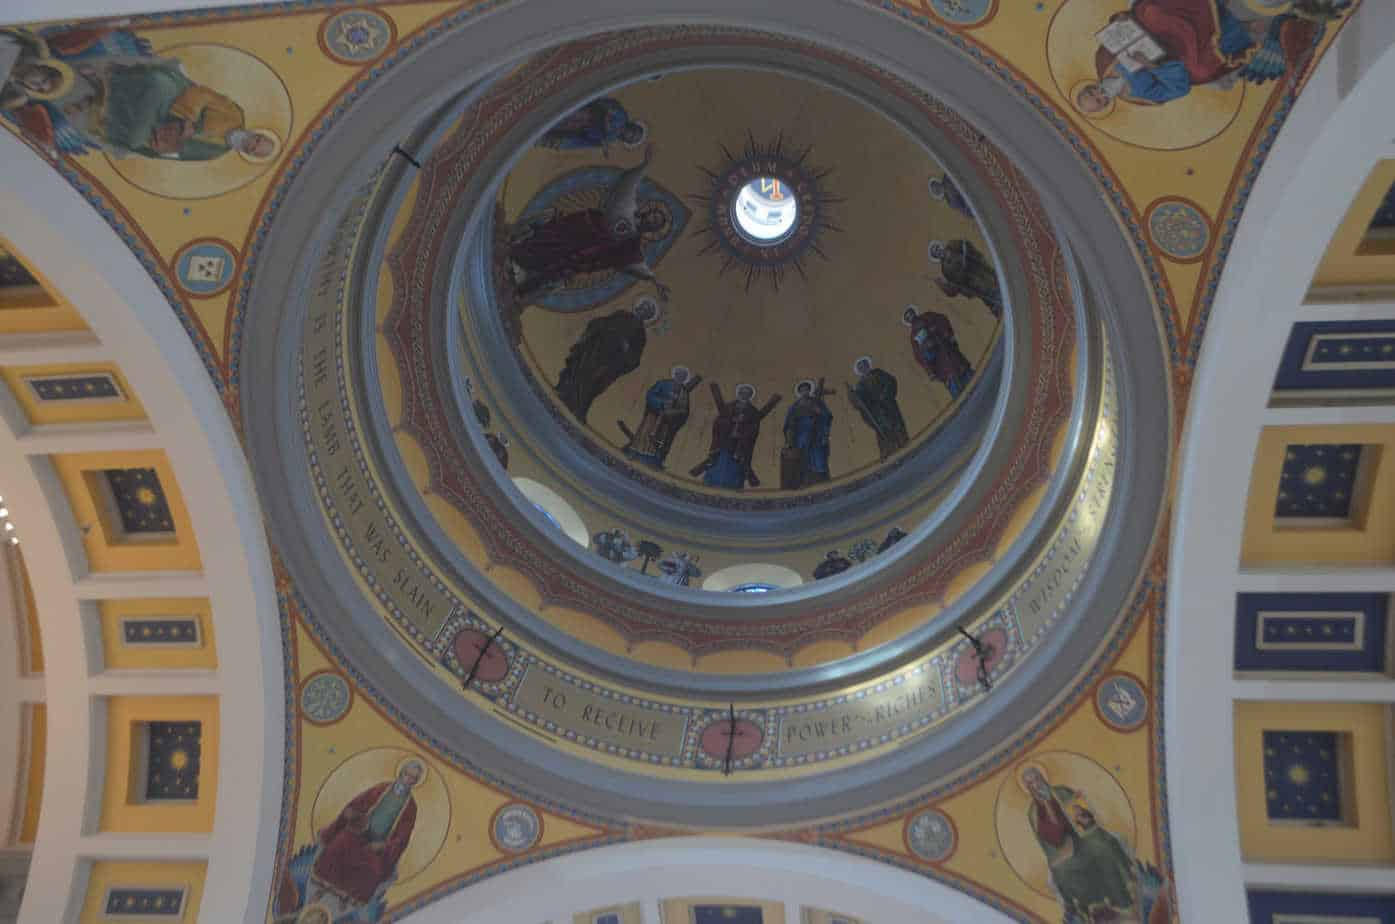 Interior of the dome of the Cathedral of the Sacred Heart in Knoxville